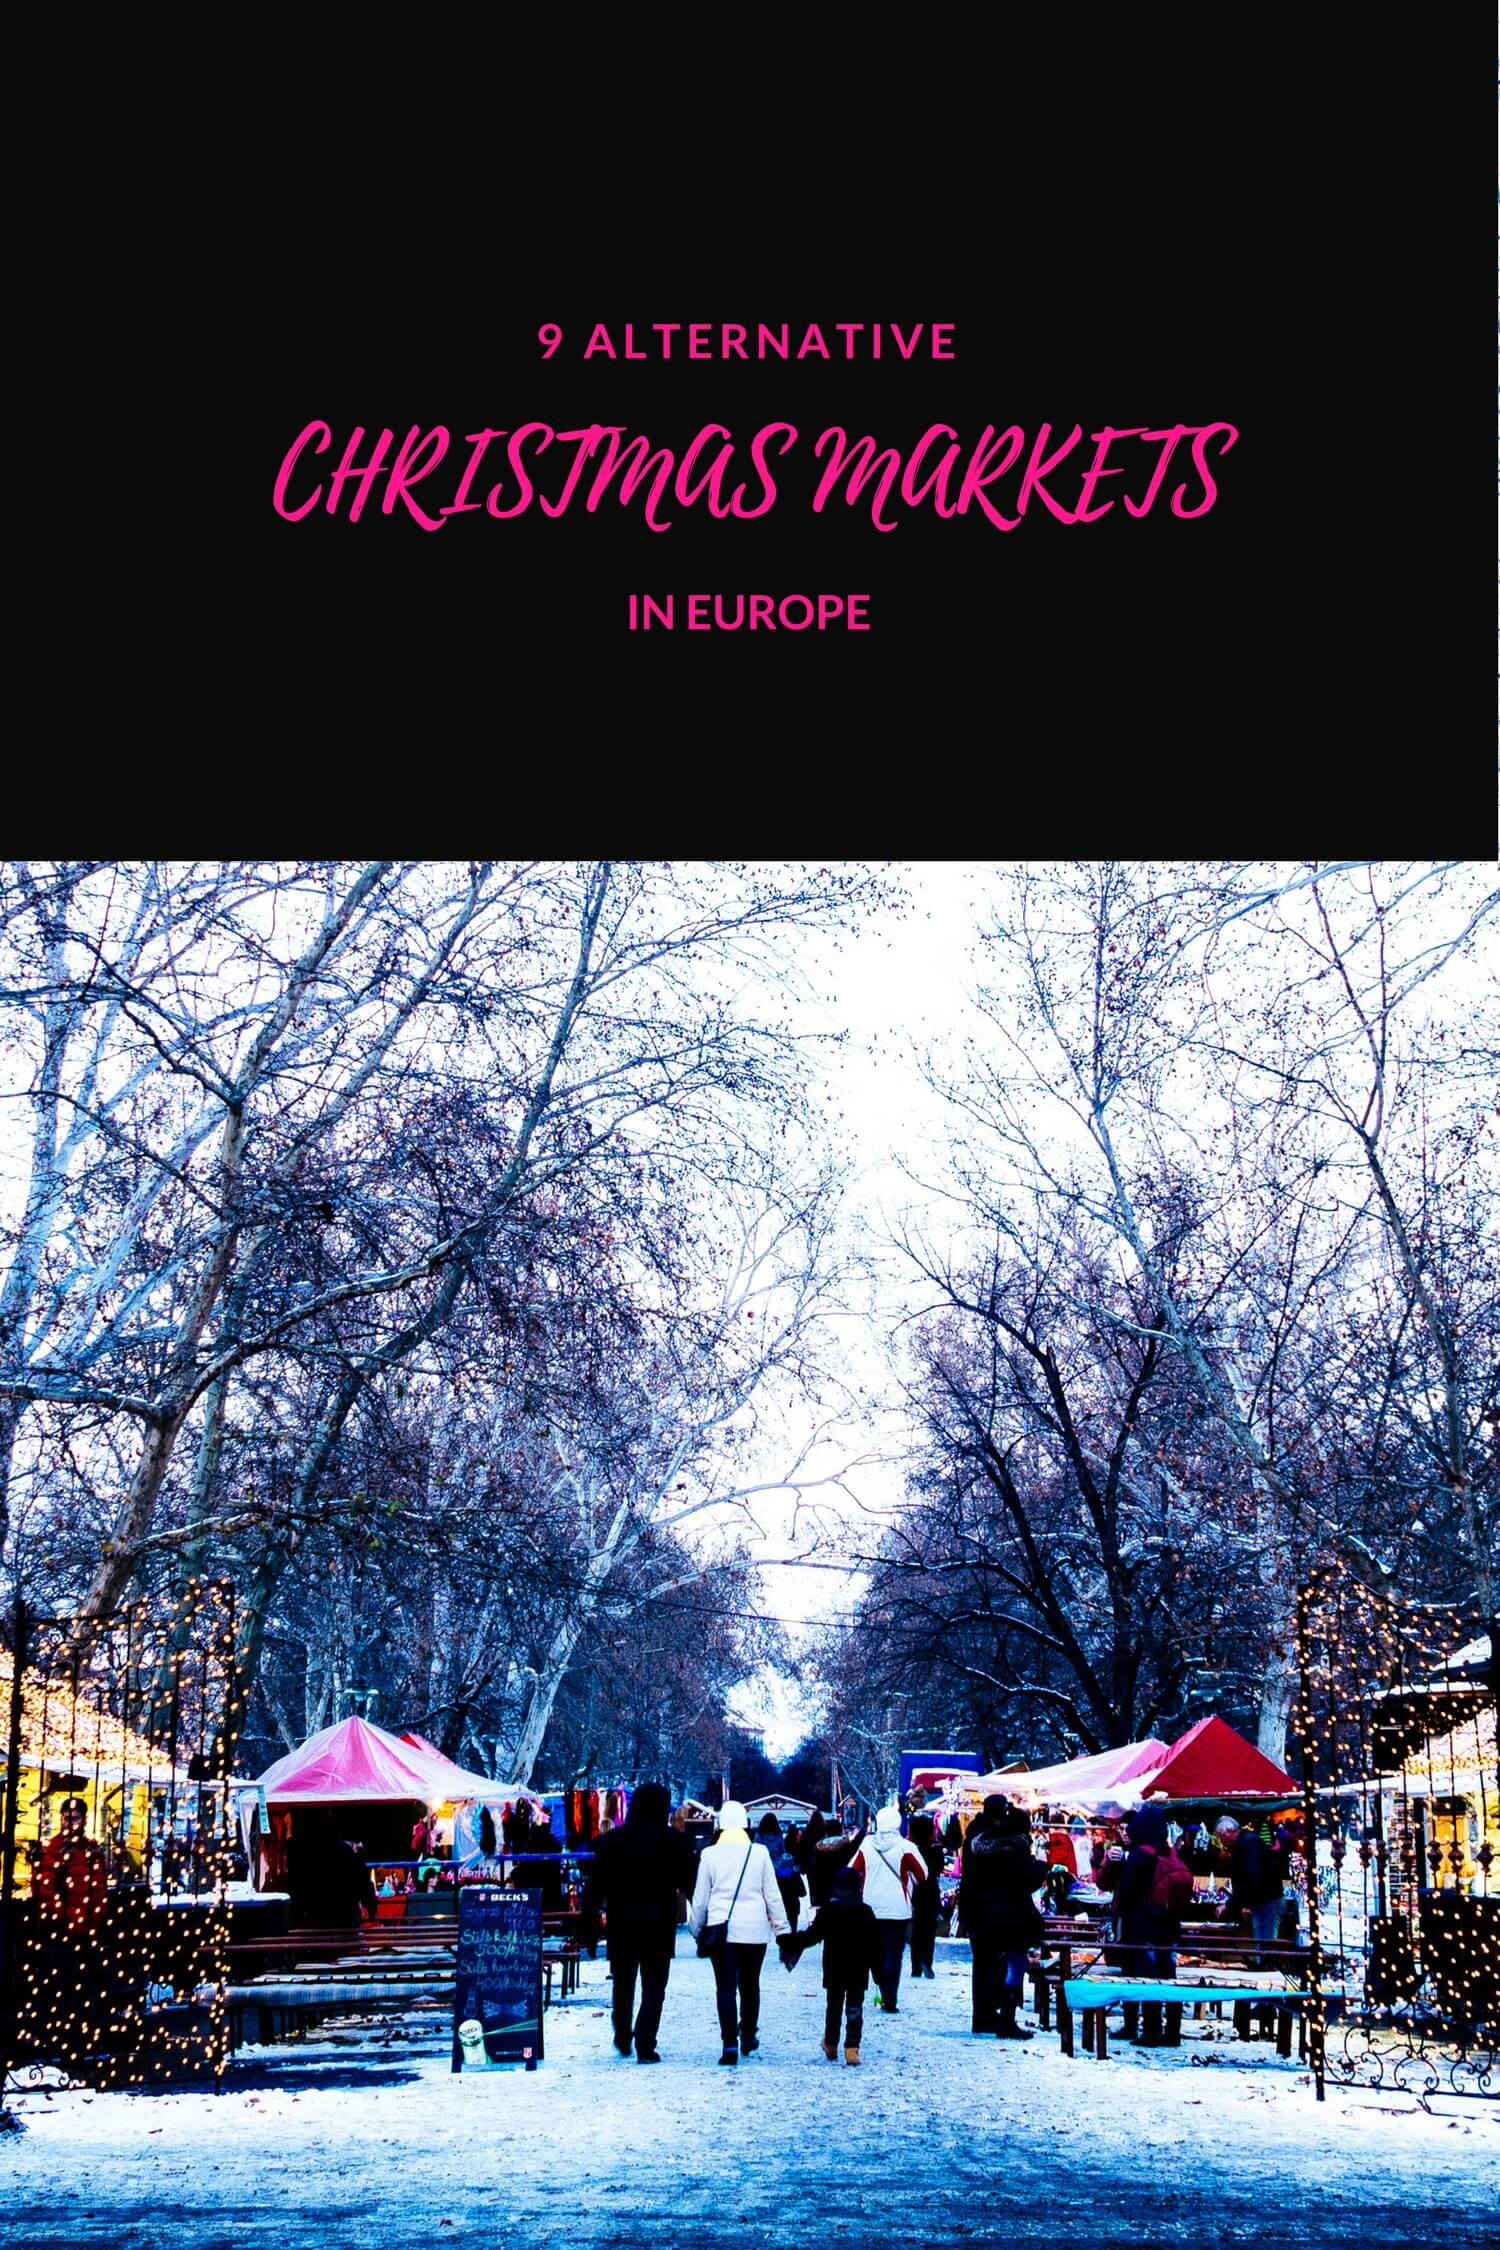 Alternative Christmas Markets